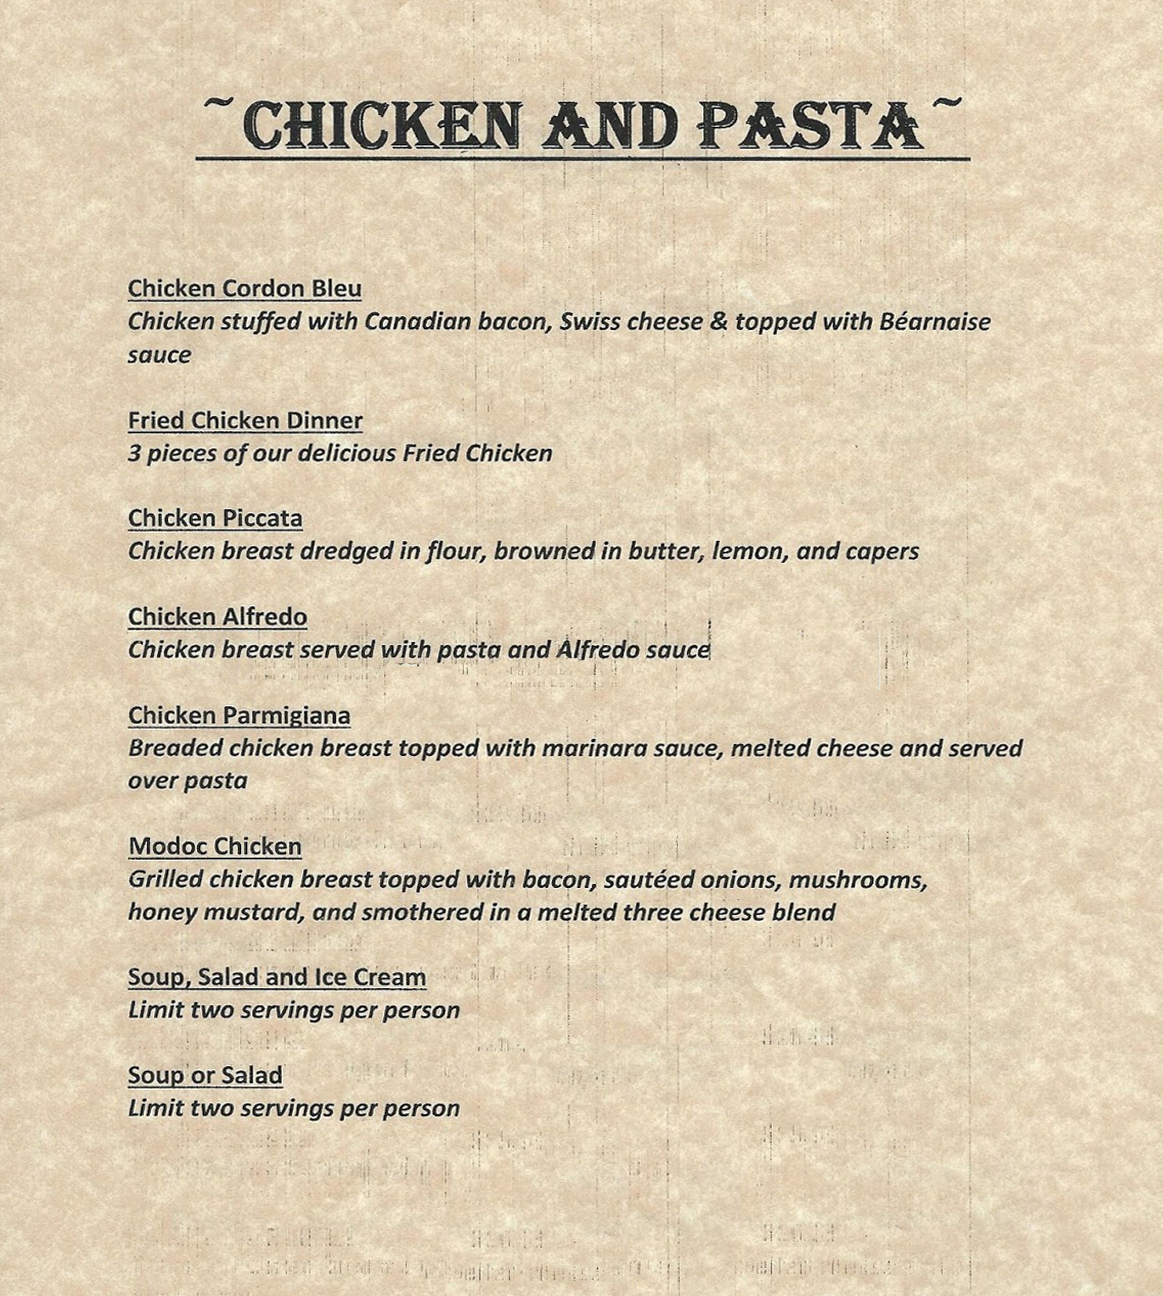 chicken and pasta2.jpg